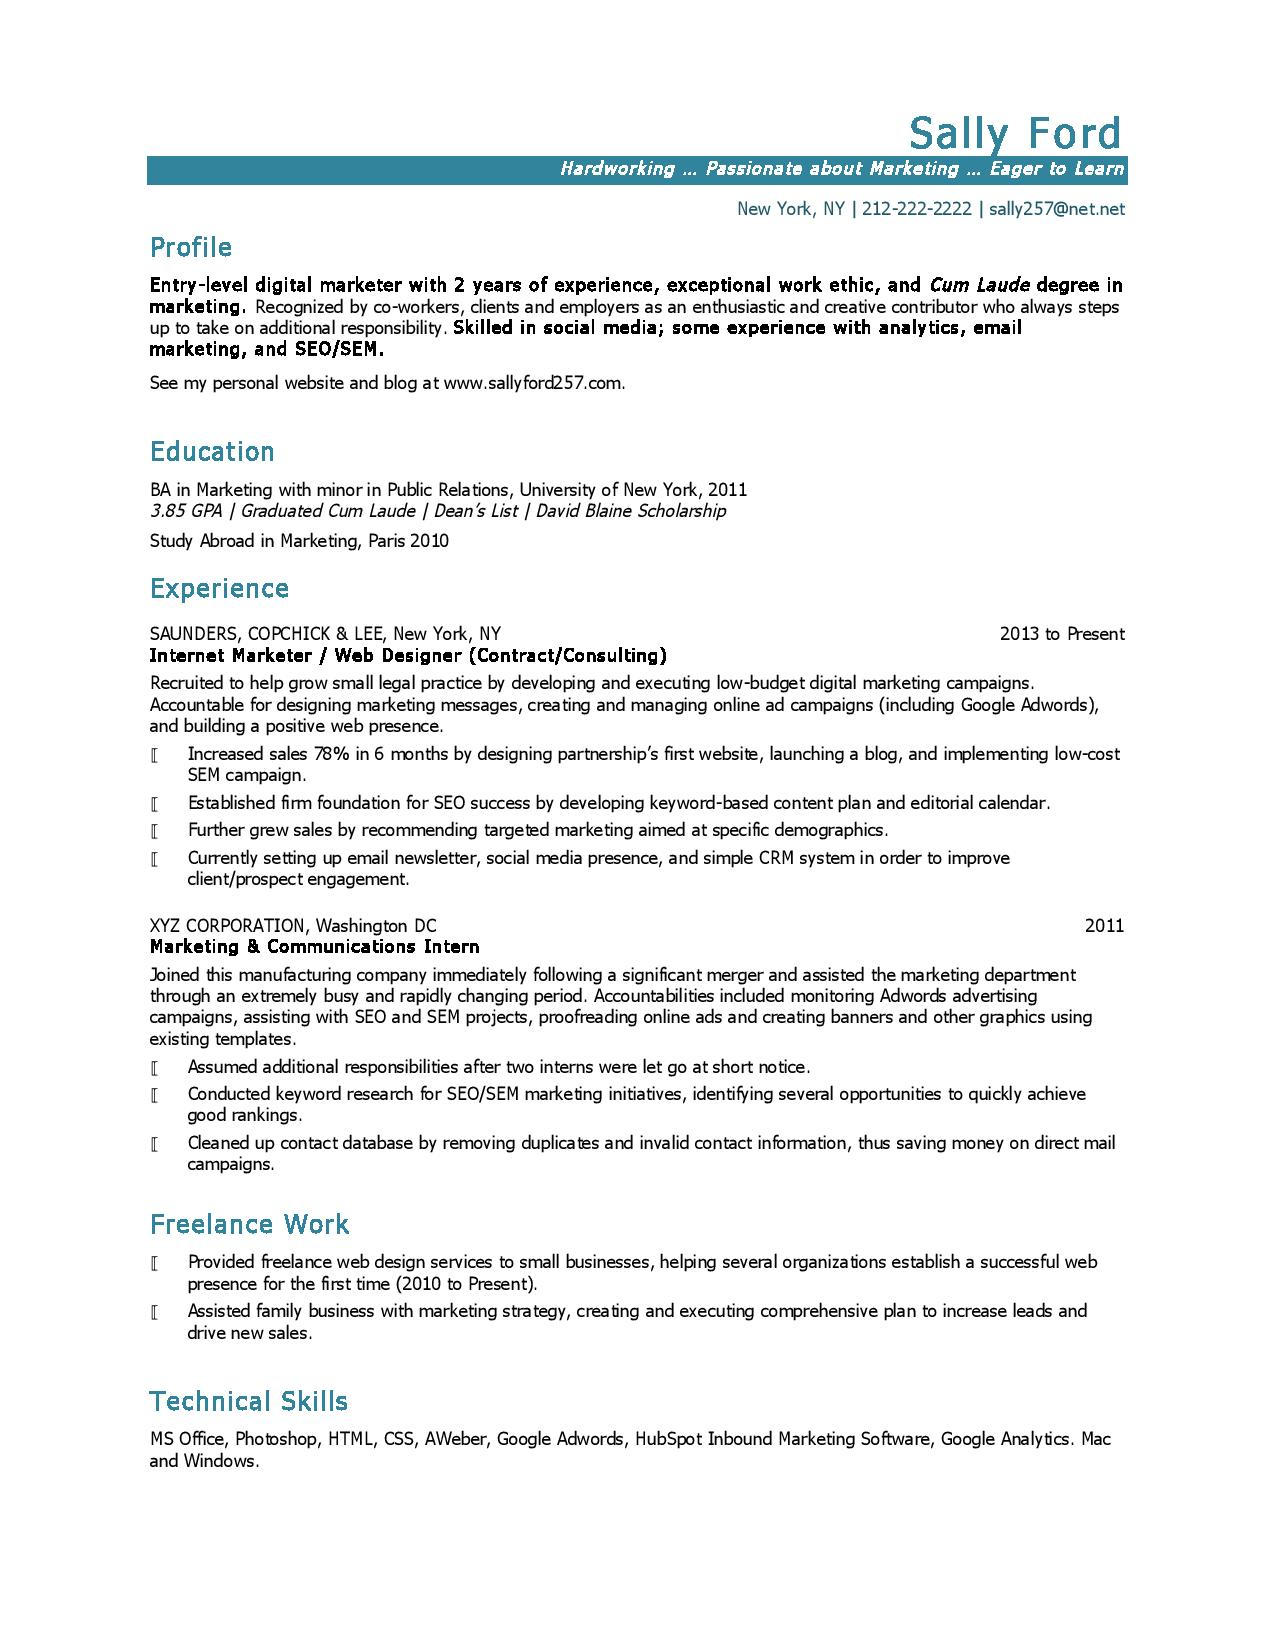 Entry Level Marketing Resume Samples Entry Level Marketing Resume Task List Templates